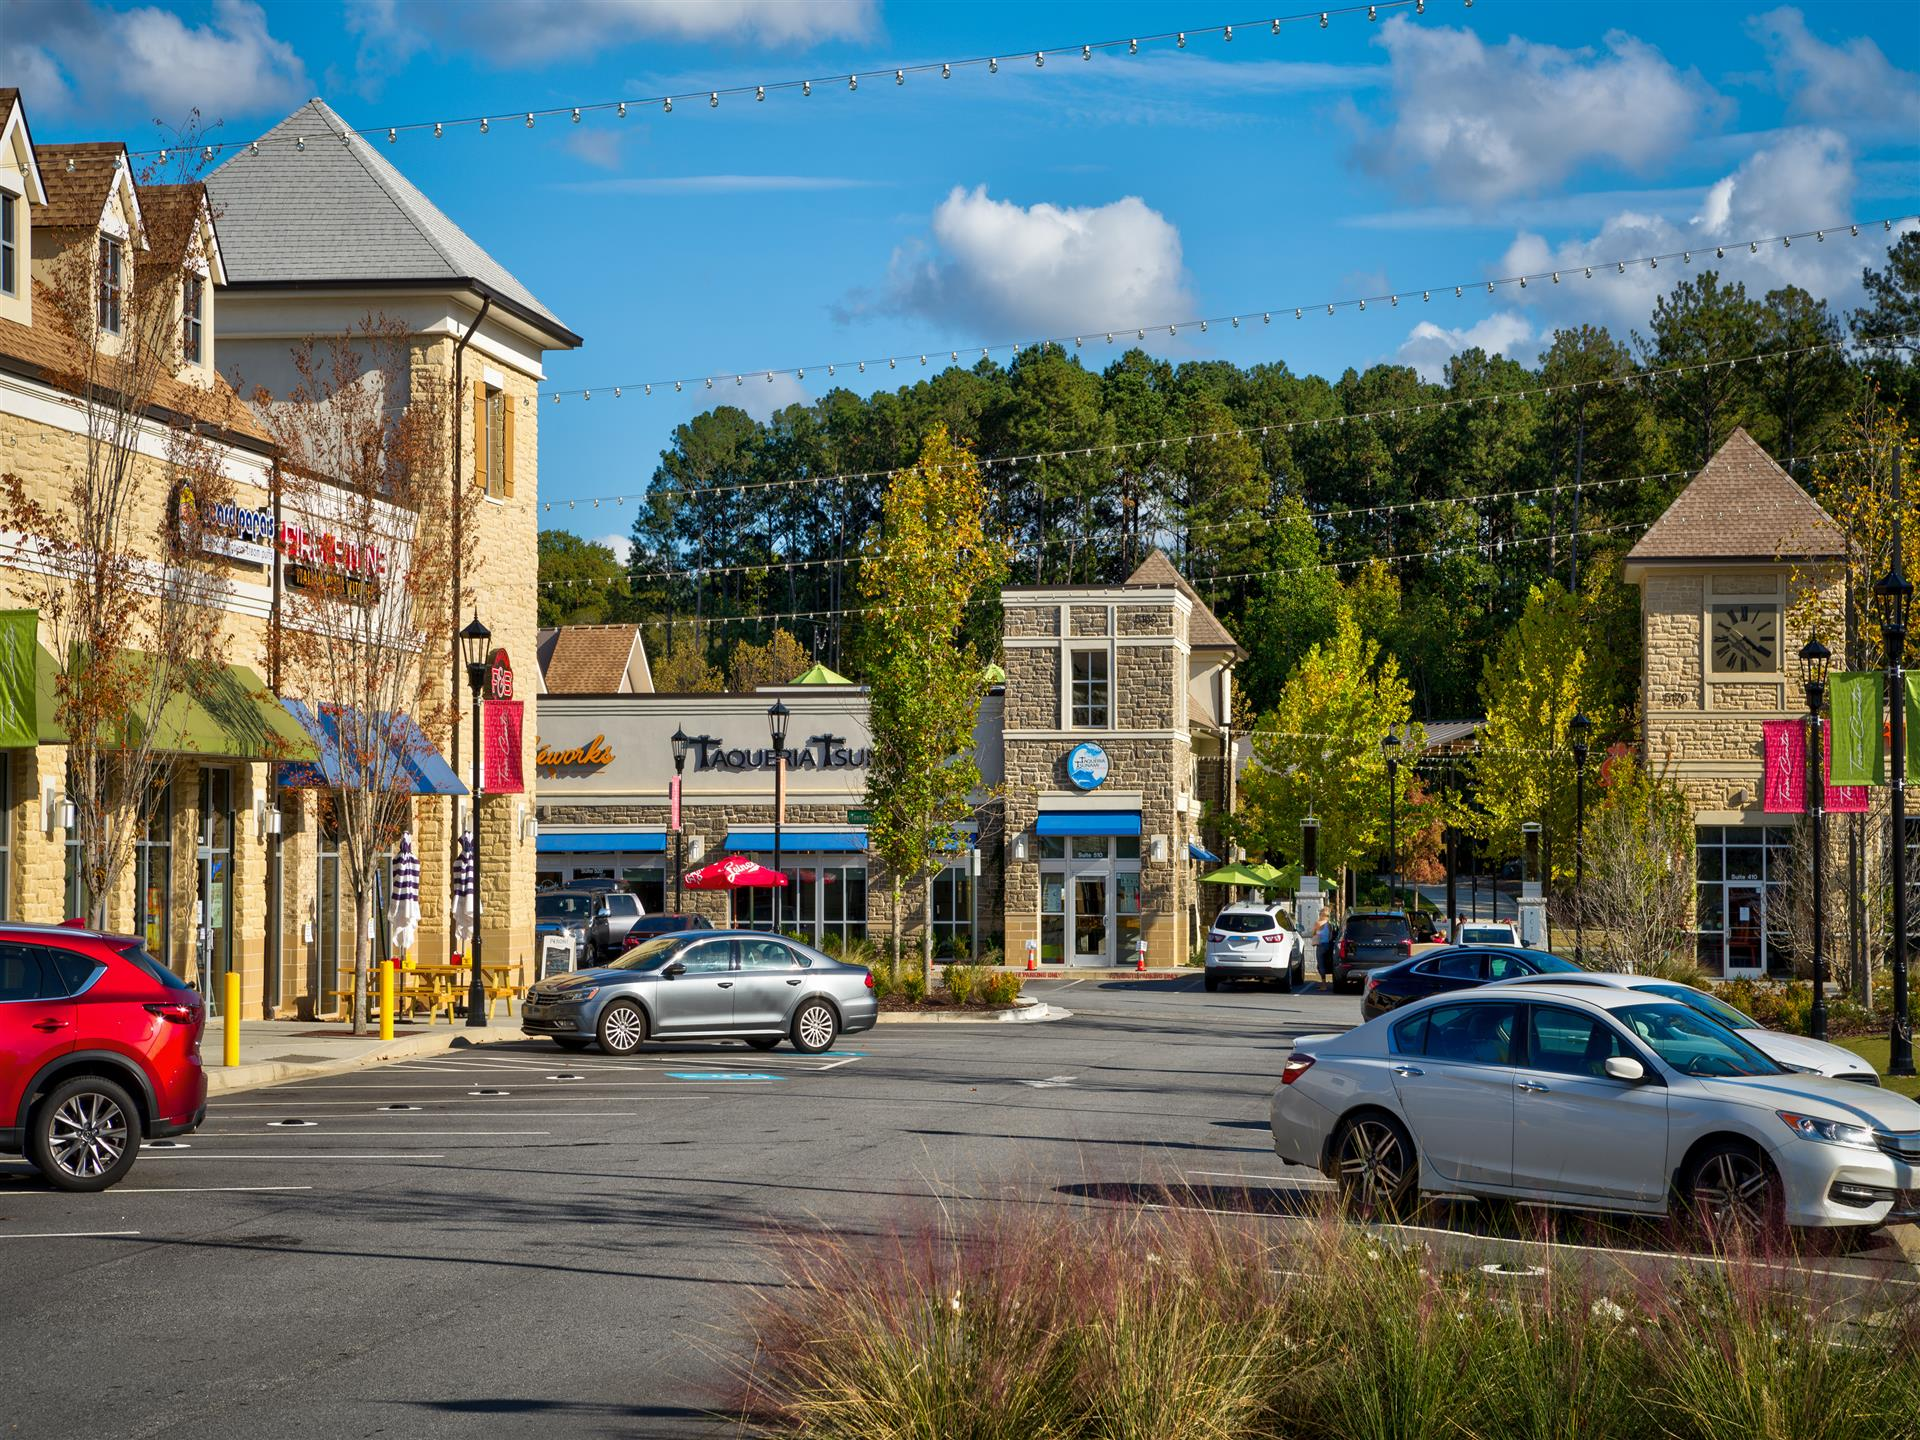 Retail - various retail centers and parking